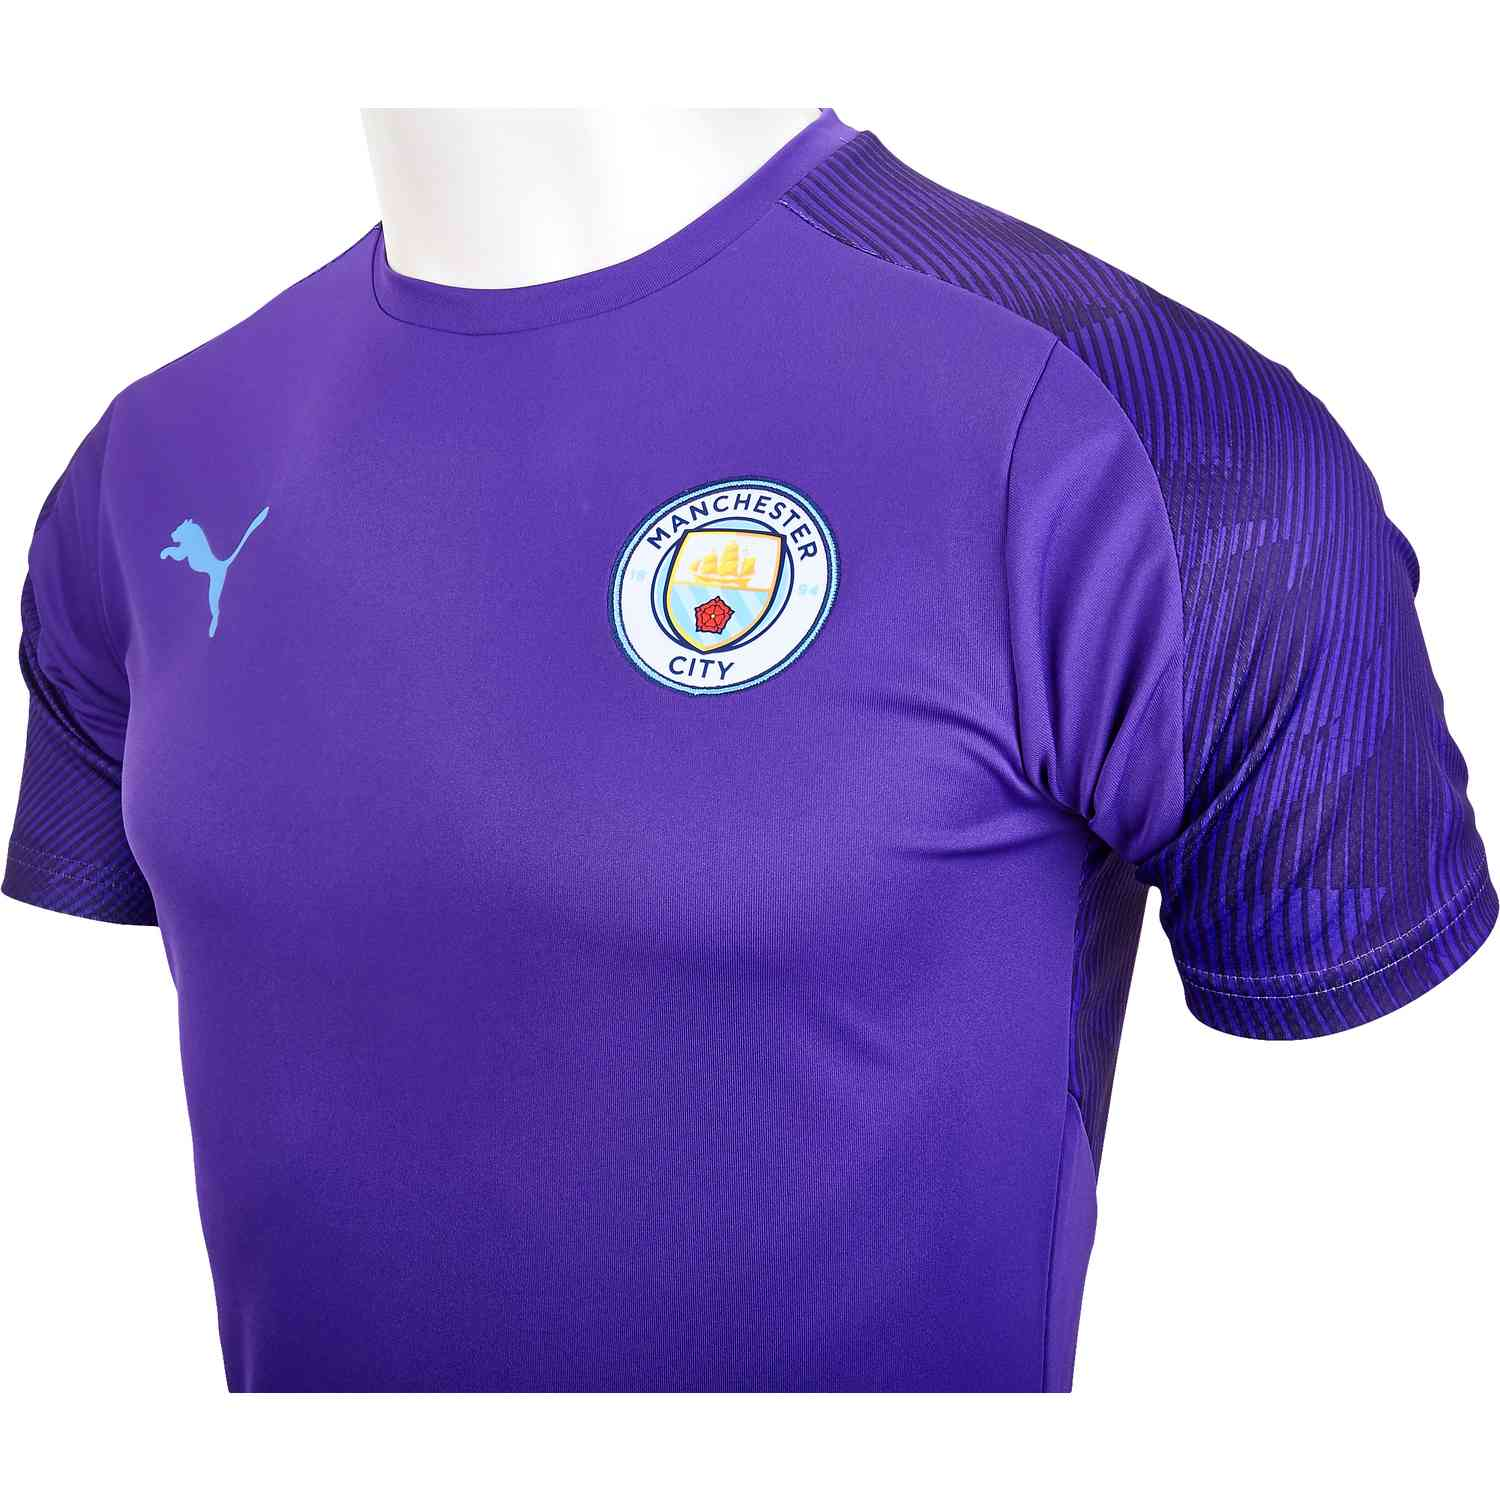 best website 31209 24f87 PUMA Manchester City Training Jersey - Tillandsia Purple/Team Light Blue -  SoccerPro